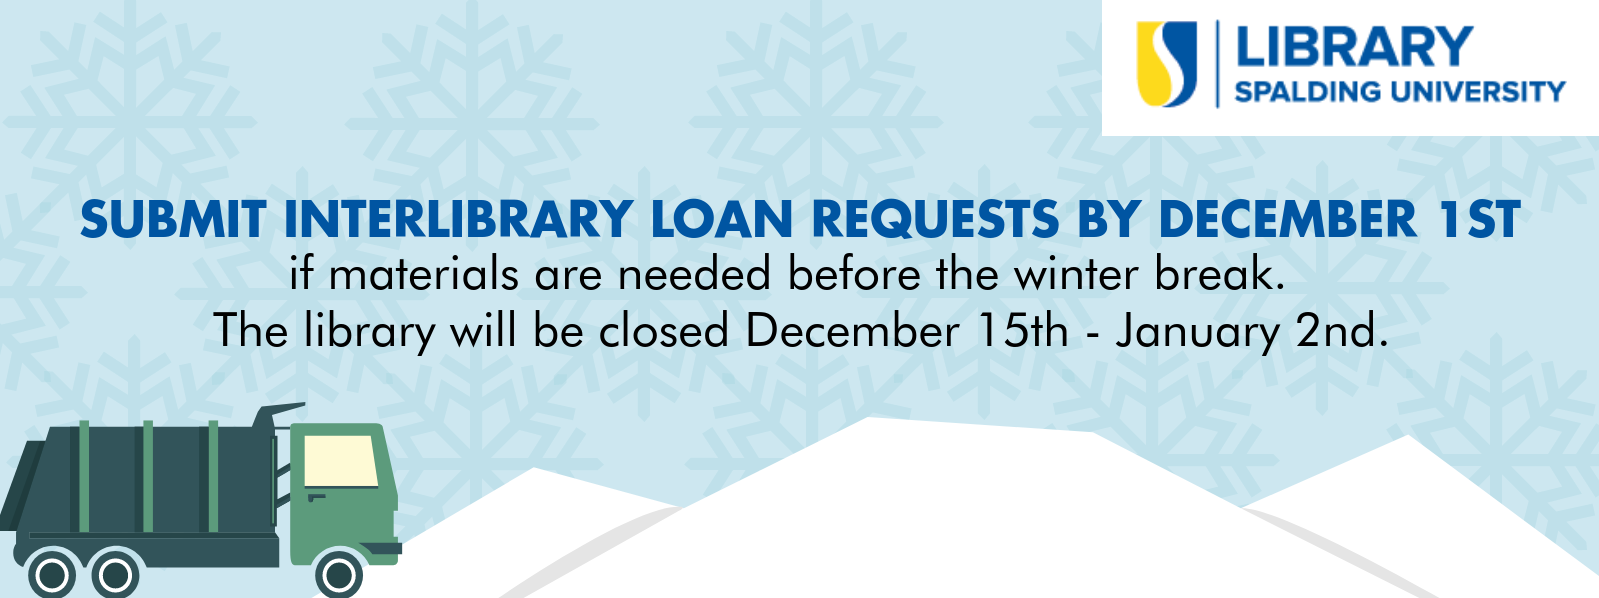 The library will be closed from December 15th through January 2nd. Submit your requests by December 1st if materials are needed before the start of winter break.